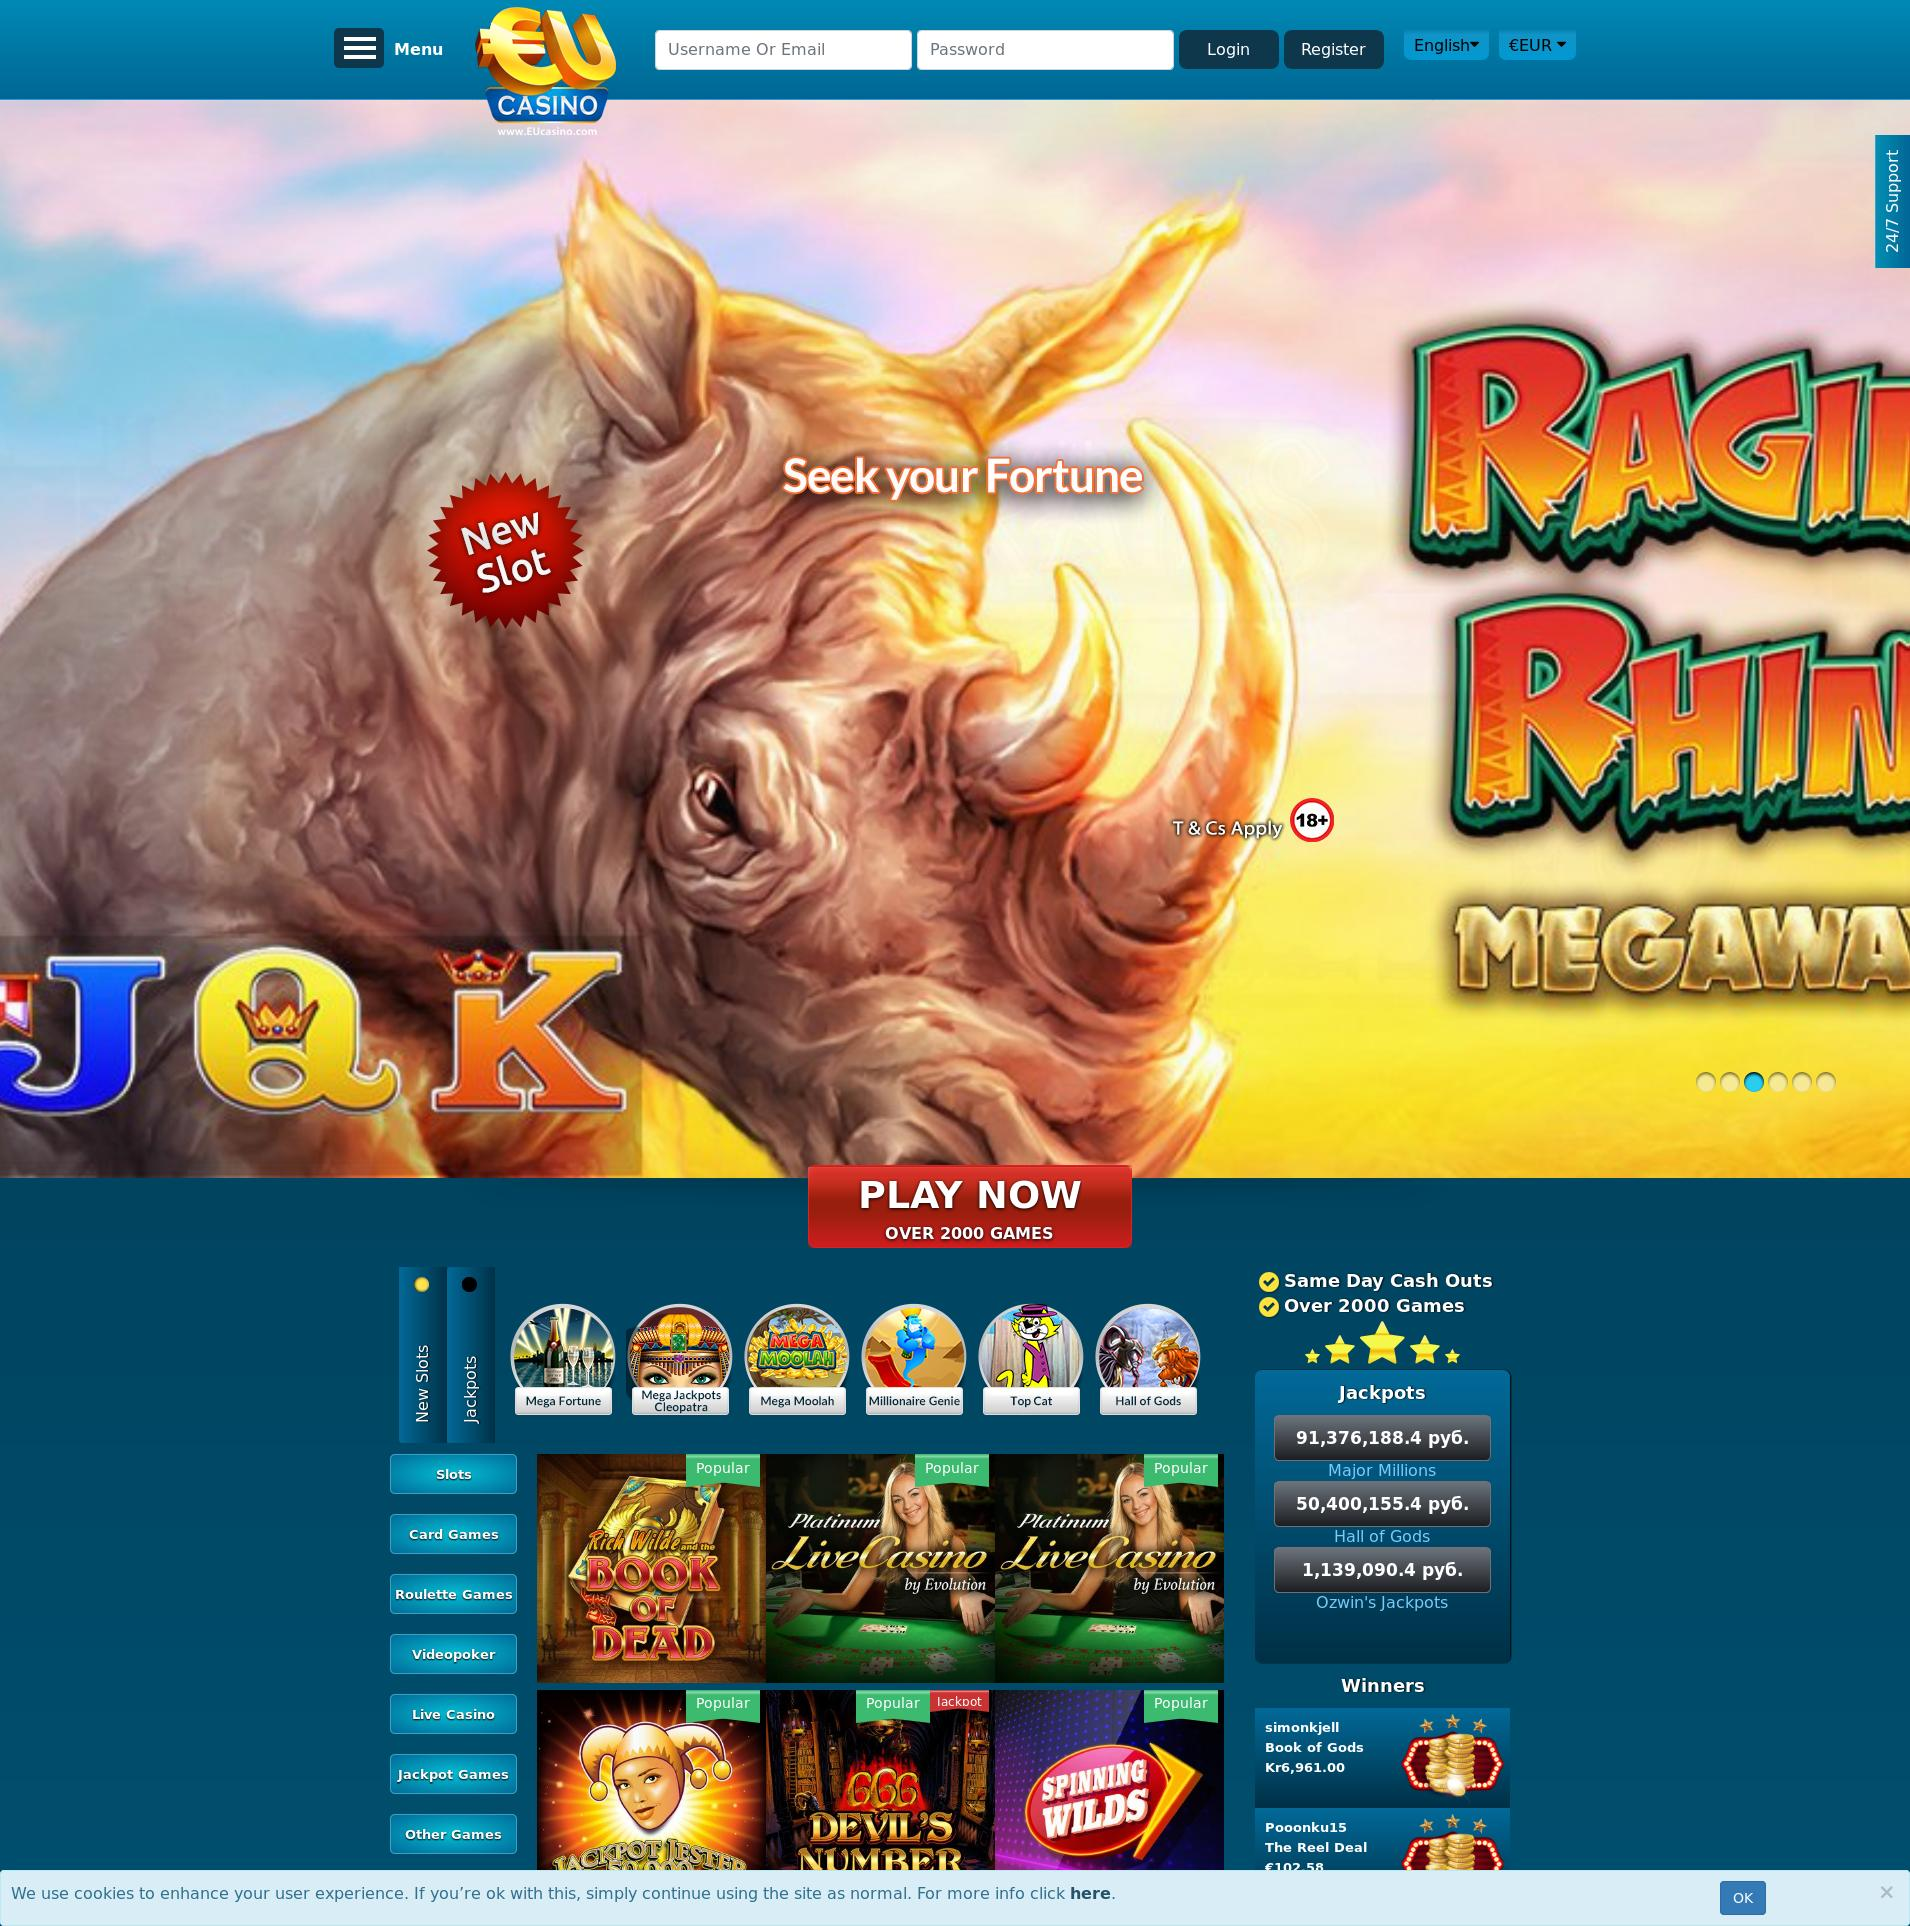 Casino screen Lobby 2019-07-15 for Russian Federation